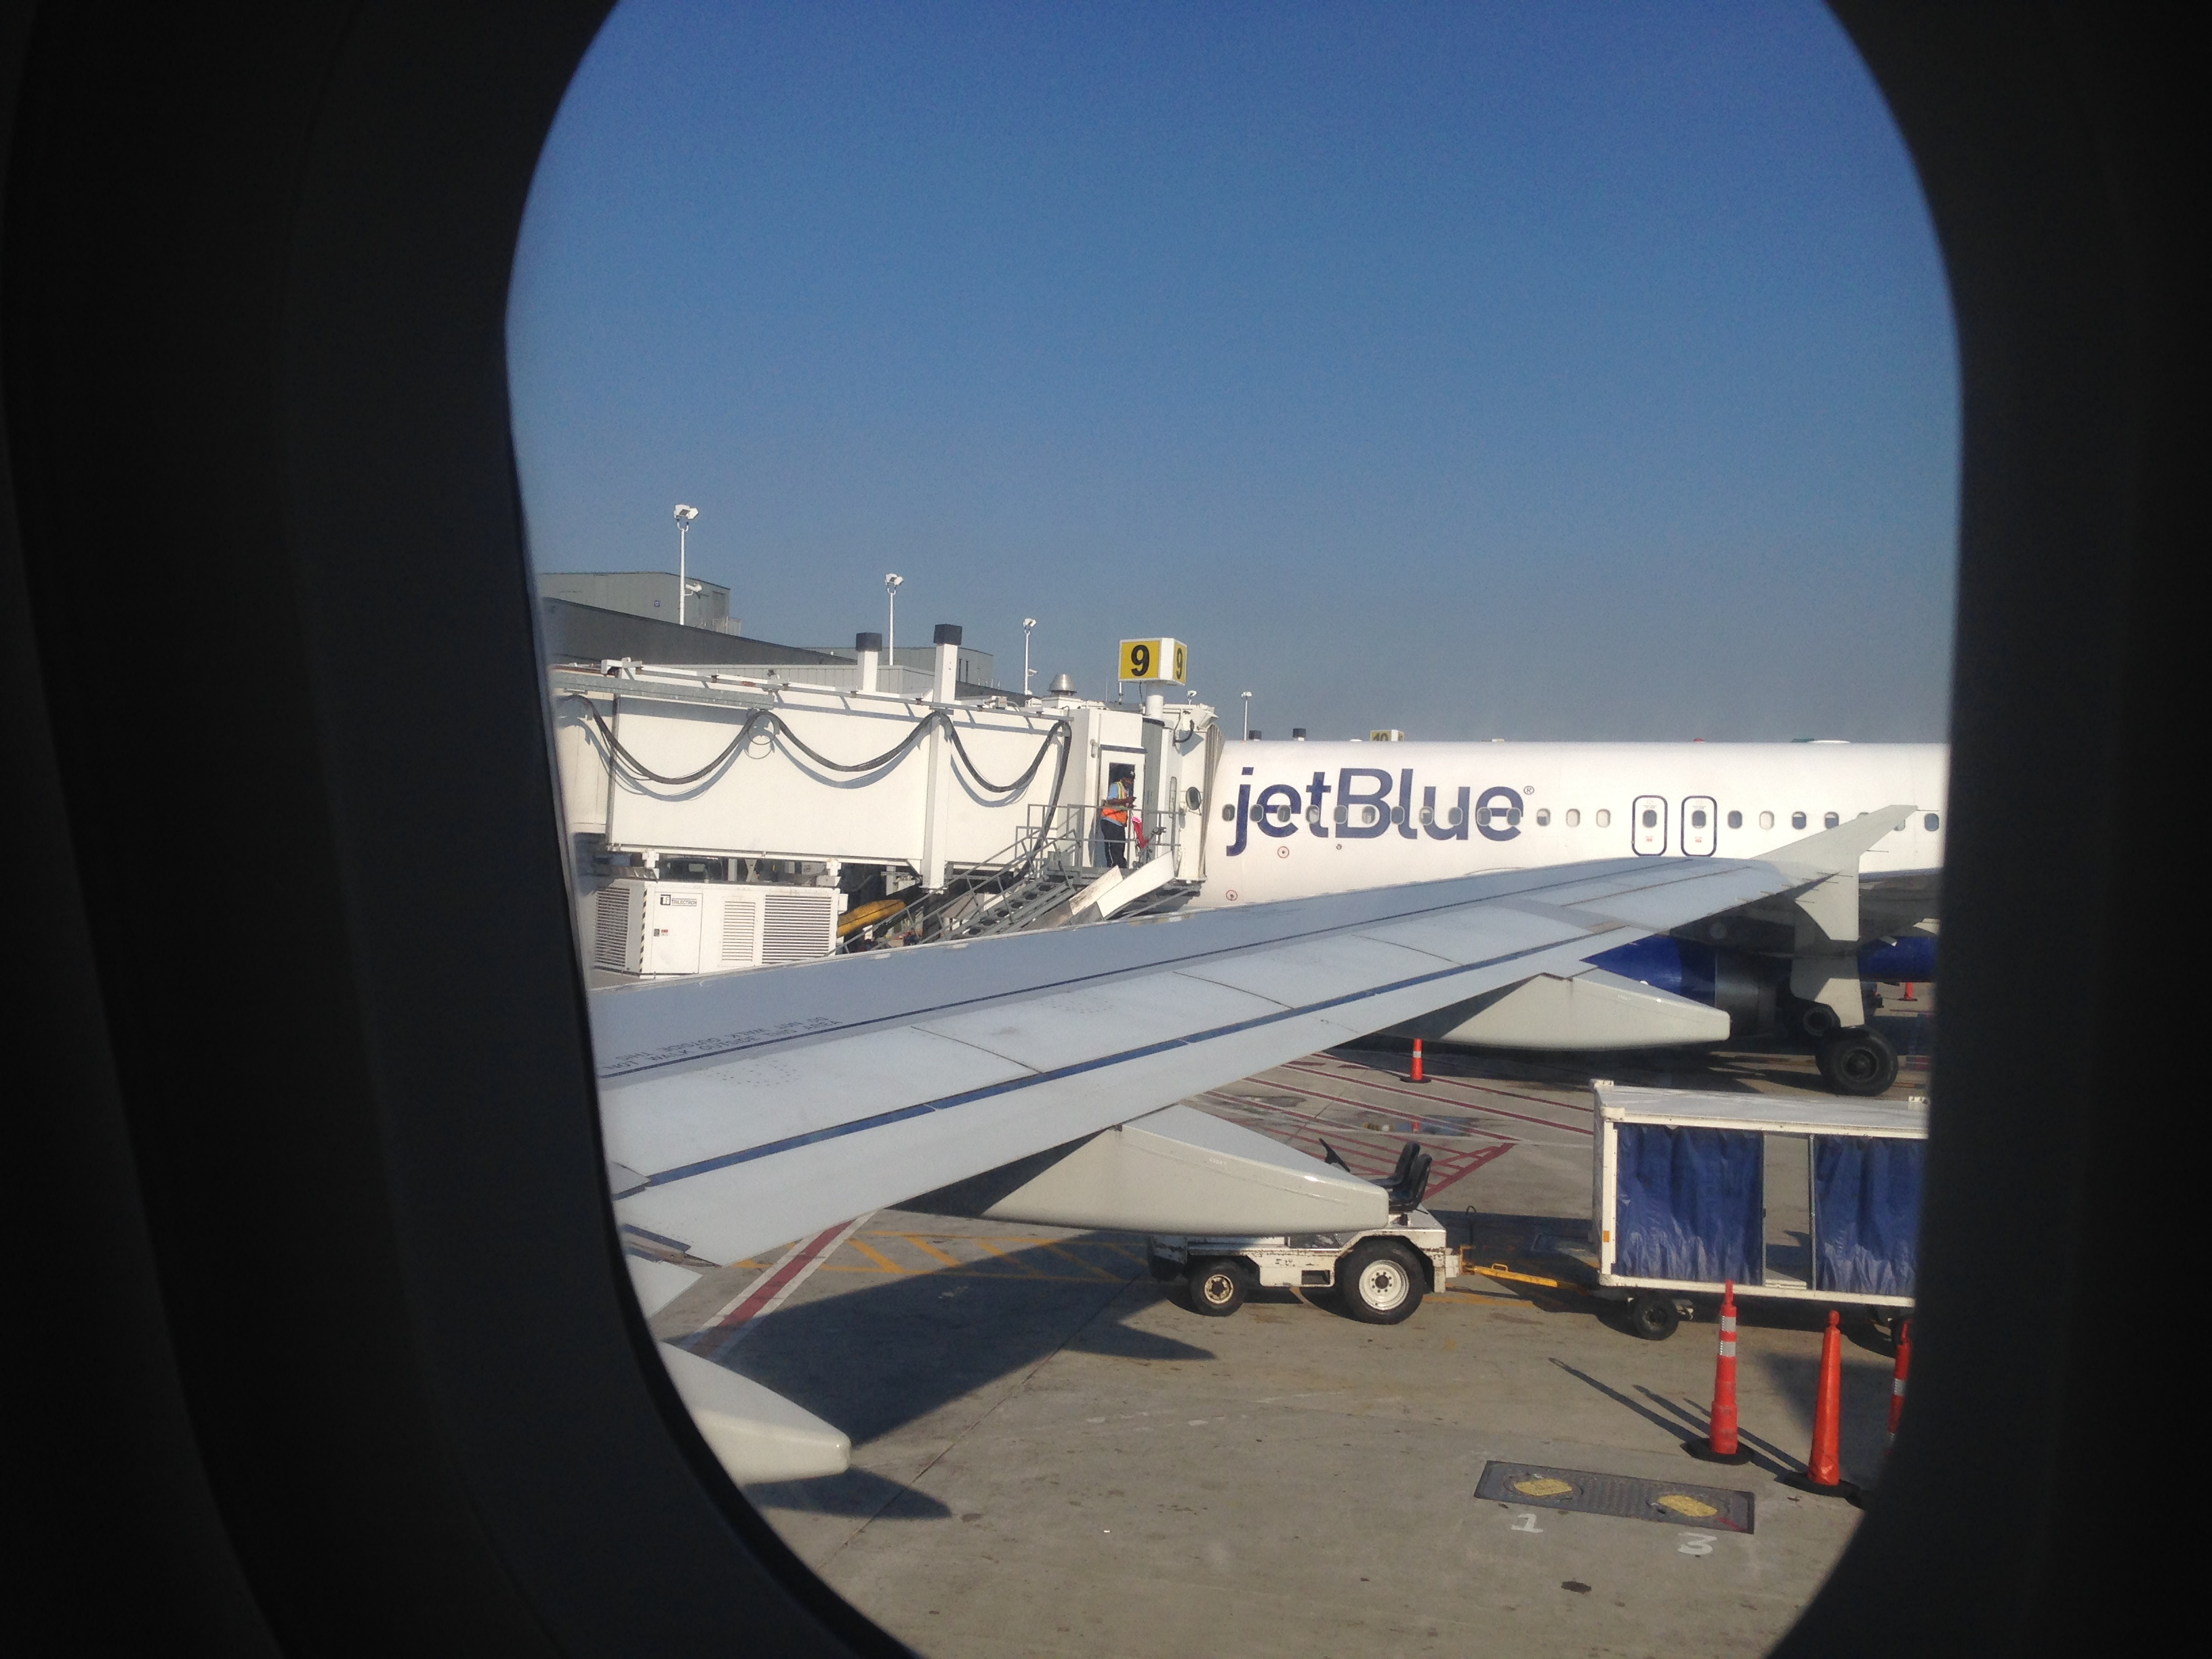 Report: Across the States with JetBlue